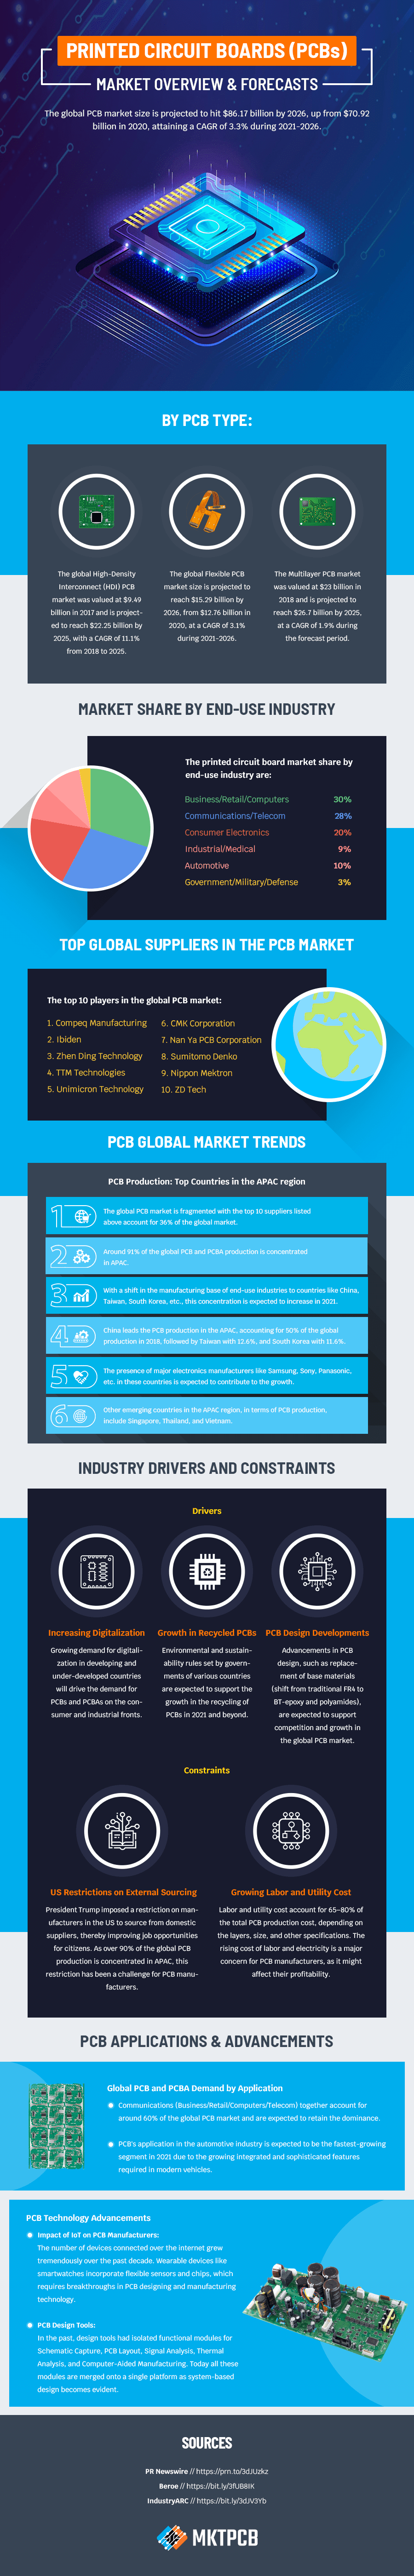 pcb industry statistics trends infographic image